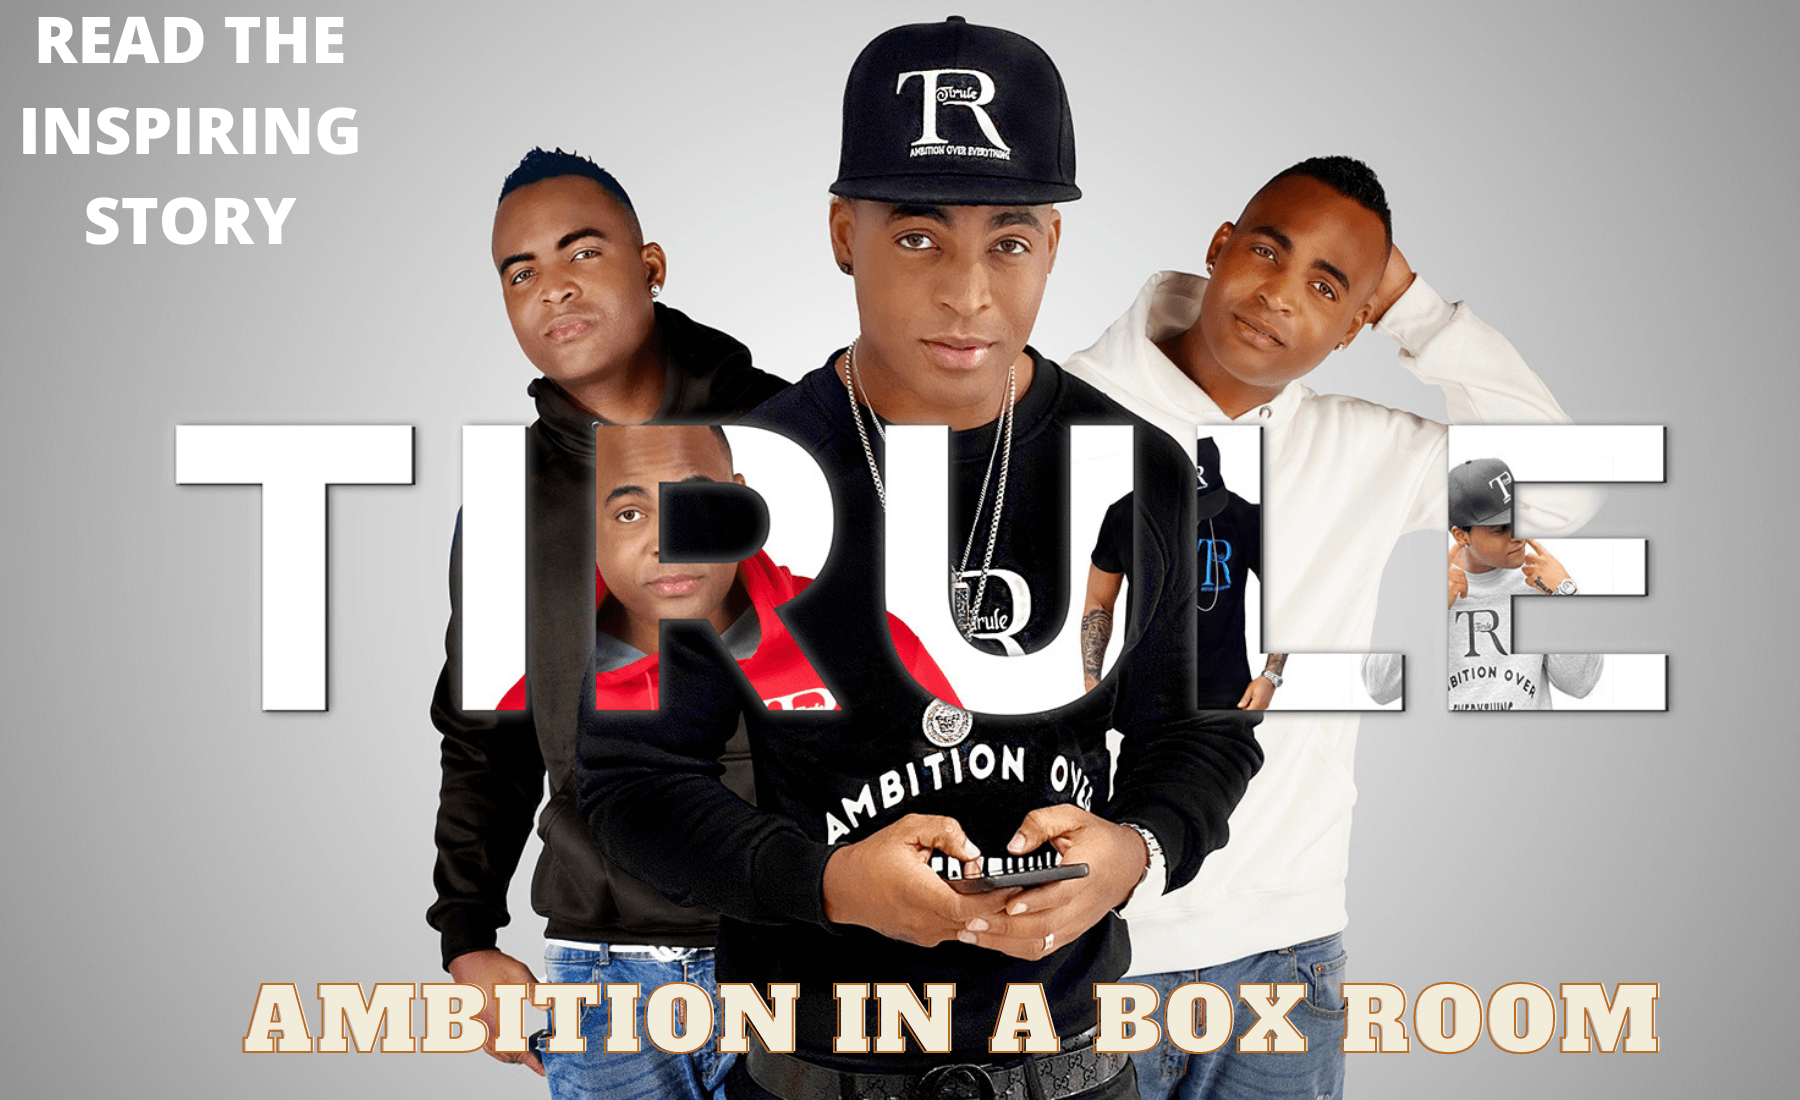 Tirule Ambition Over Everything Ambition In A Box Room